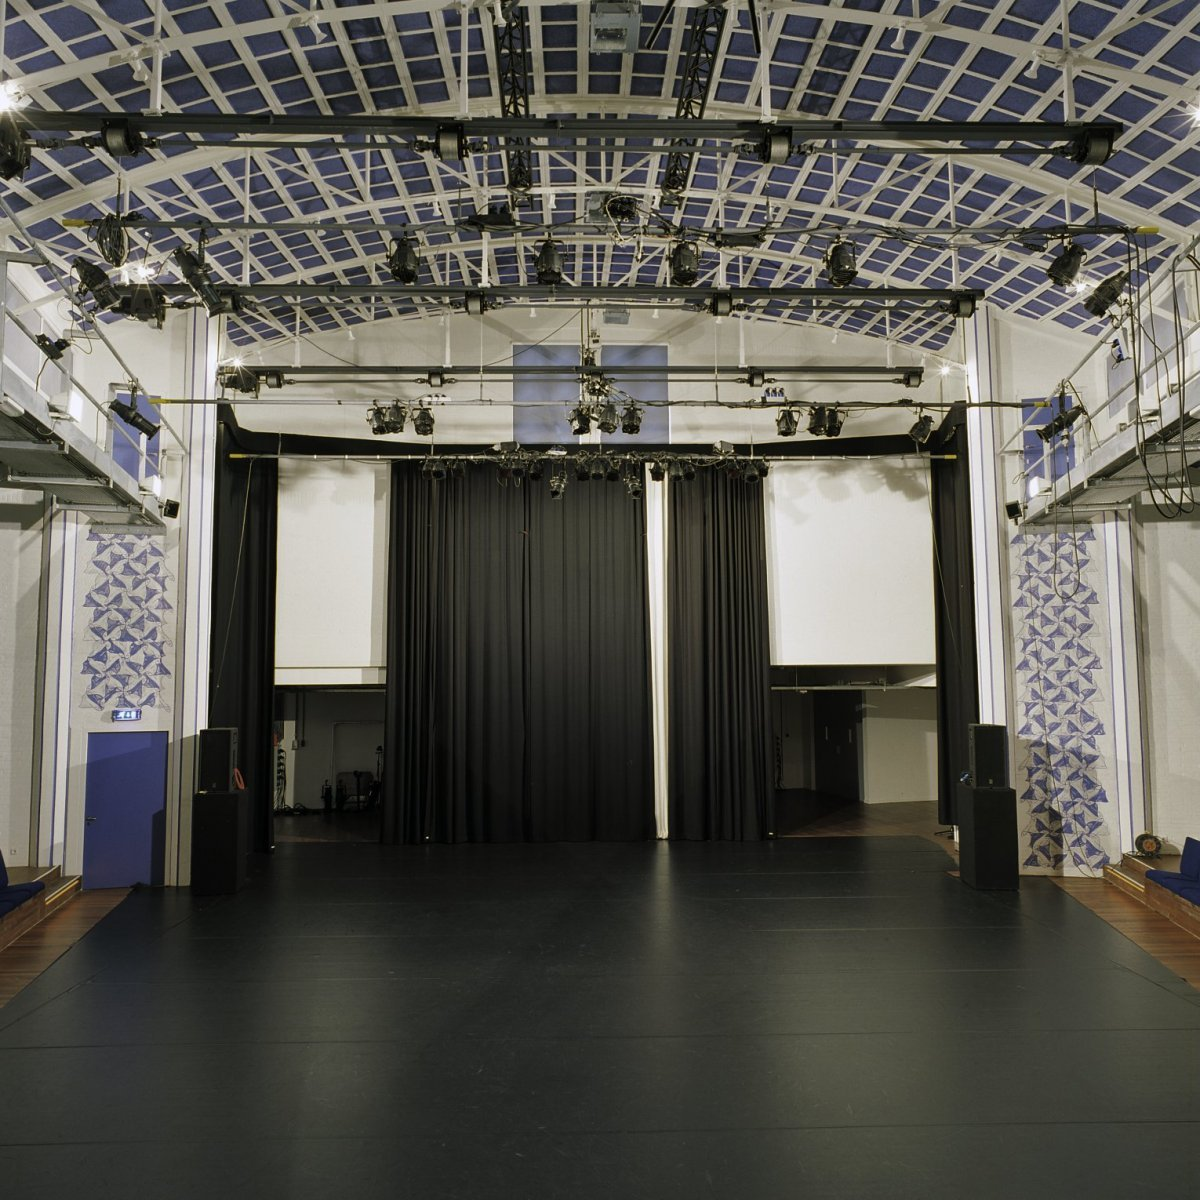 content/images/img-19-20/programme/chapitre-6/Interieur_toneelzaal,_coulisse_-_Amsterdam_-_20384265_-_RCE.jpg